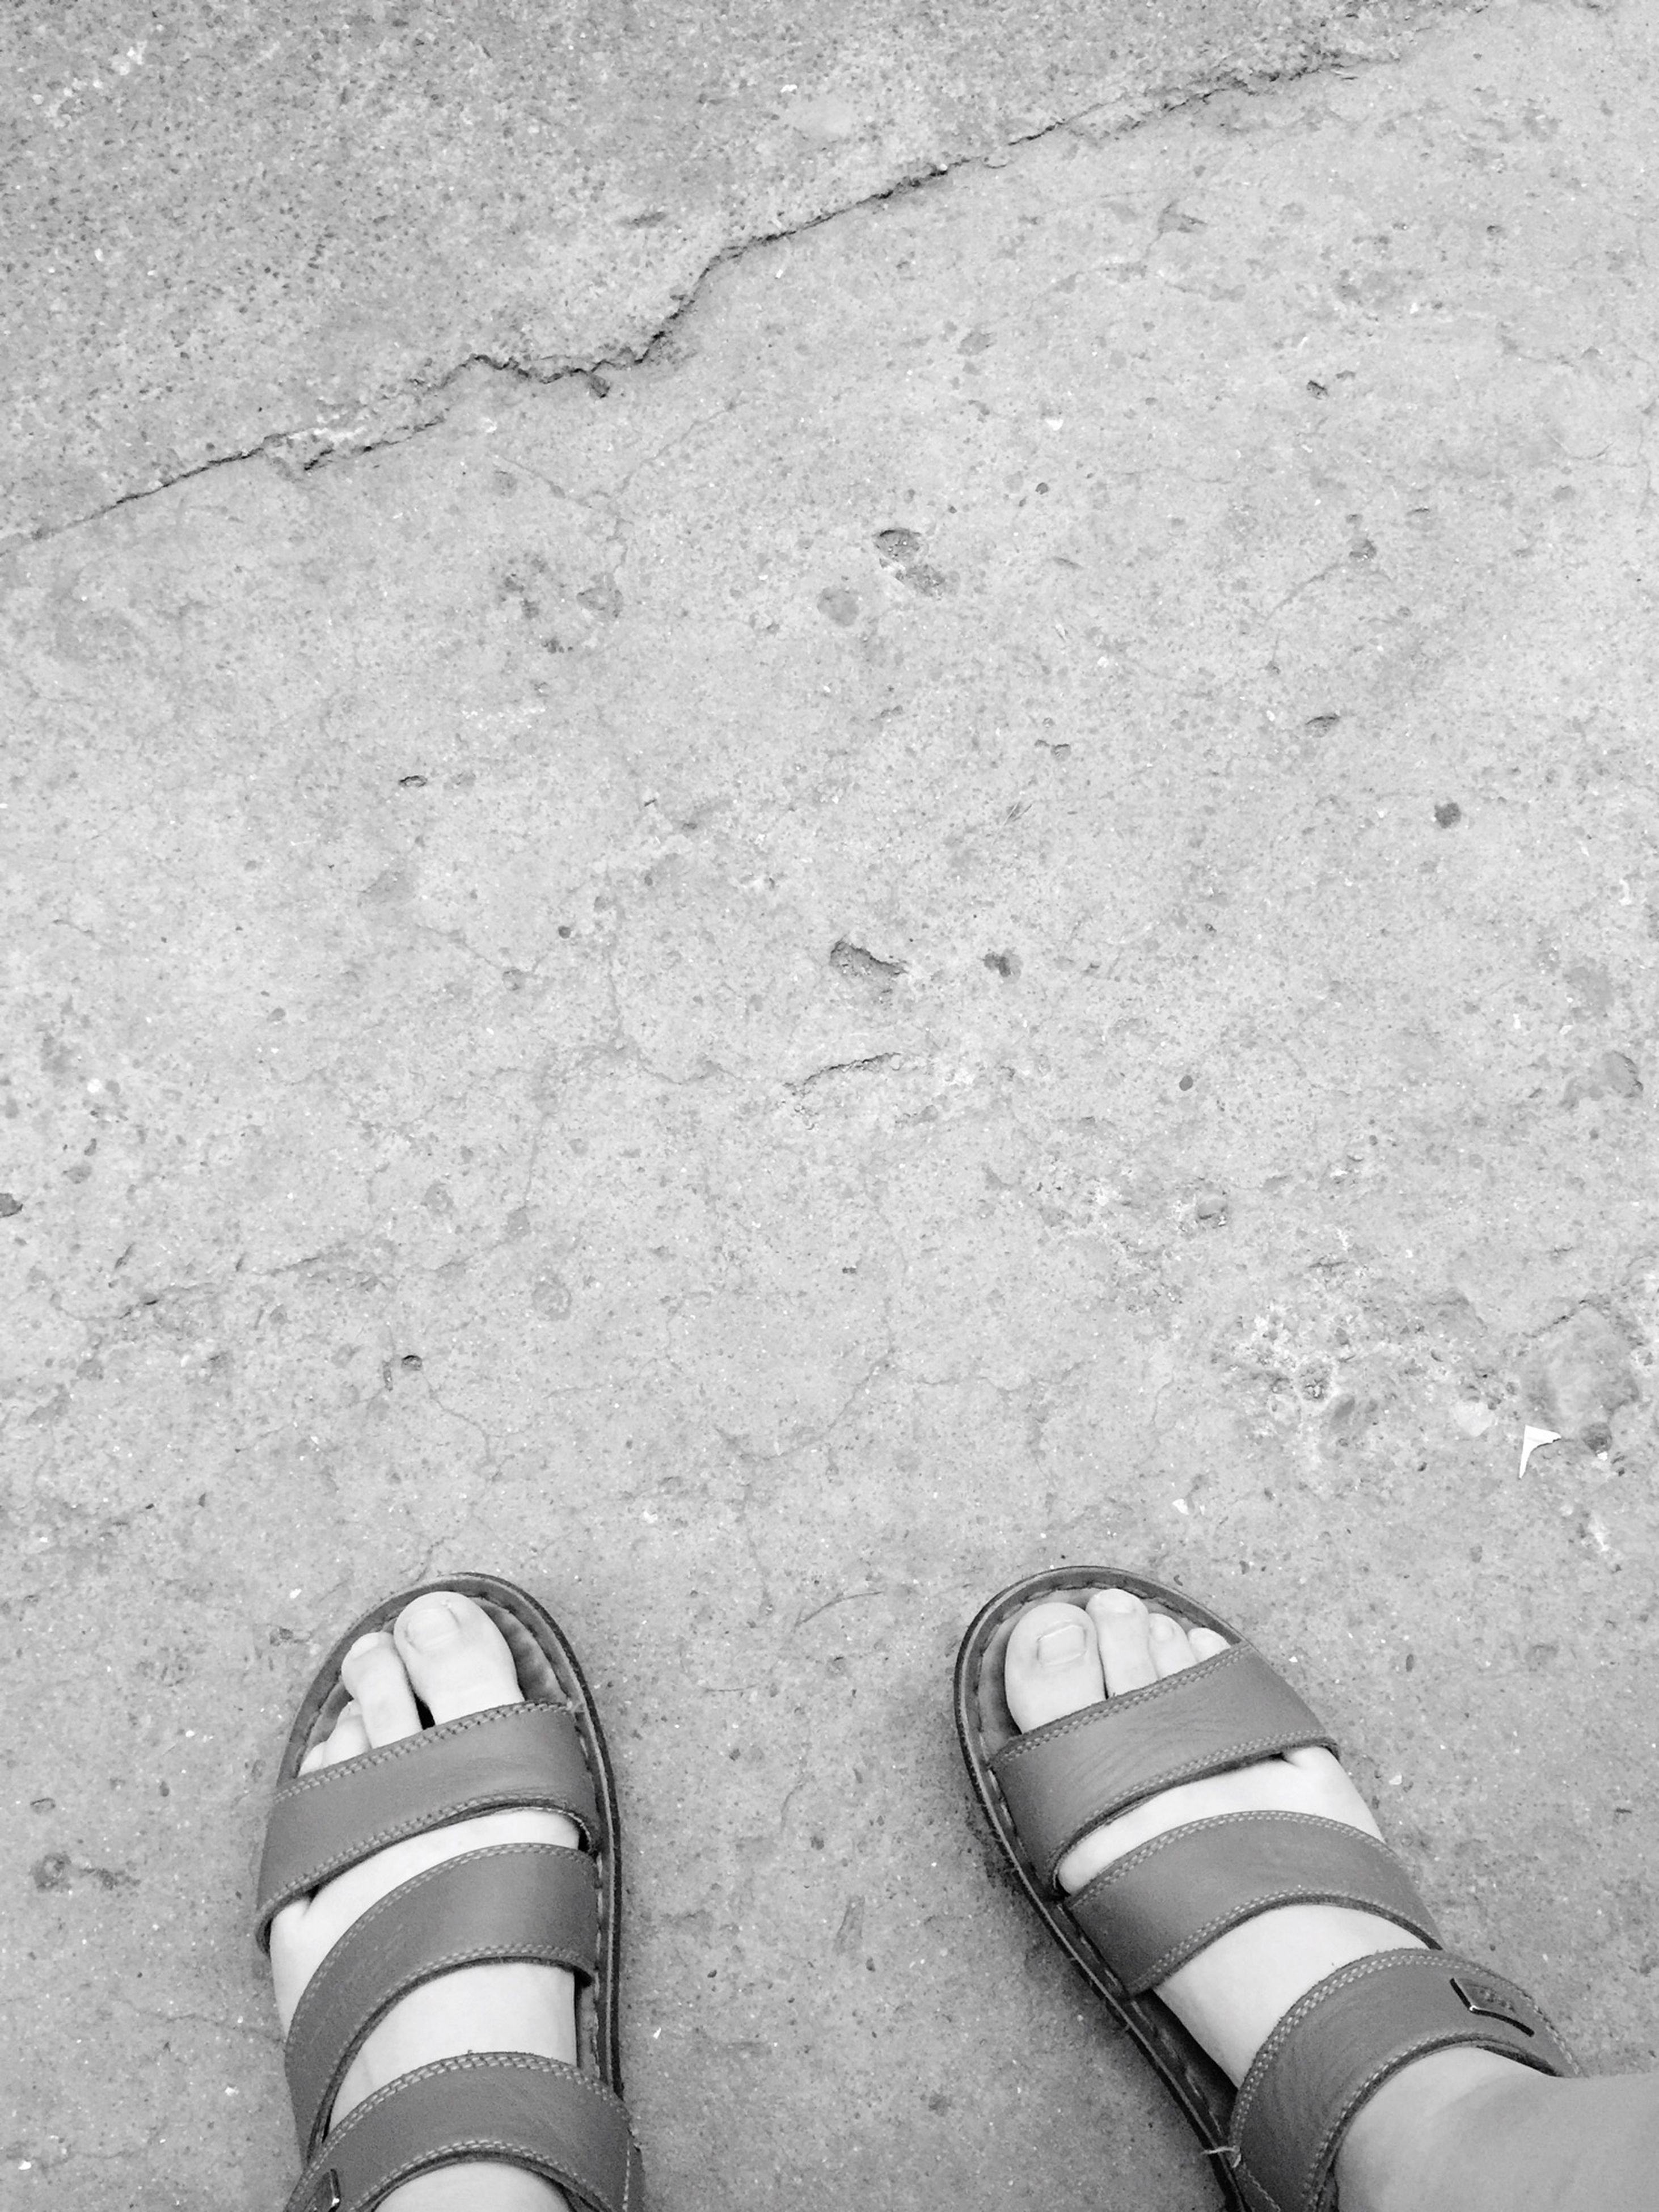 high angle view, shoe, low section, personal perspective, person, directly above, footwear, part of, sand, outdoors, day, textured, beach, human foot, one person, street, pattern, sunlight, concrete, ground